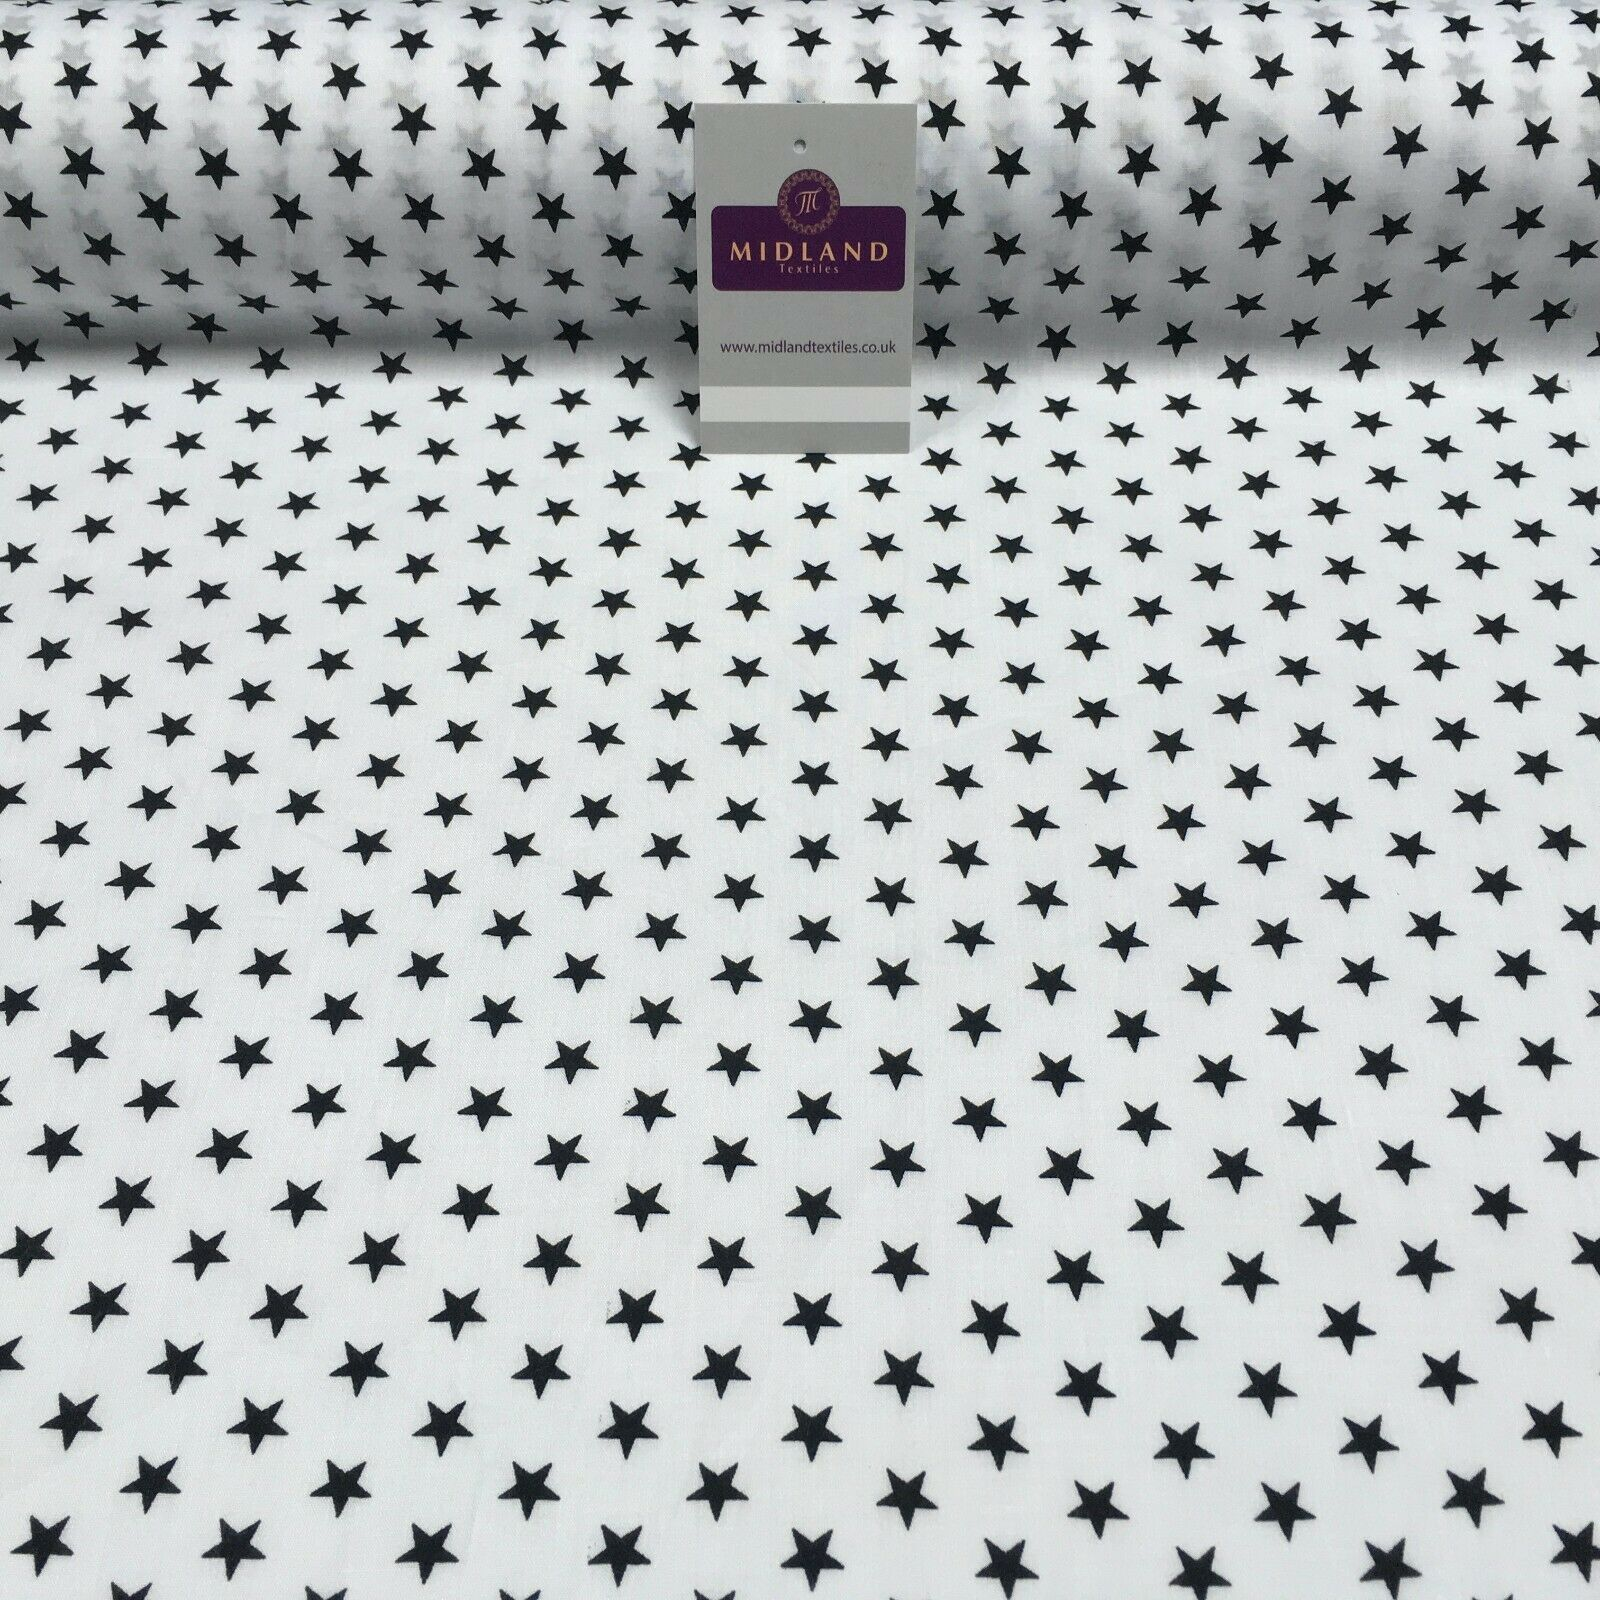 Christmas Star Xmas Printed Polycotton Fabric Craft Gifts 110 cm MD1283 Mtex